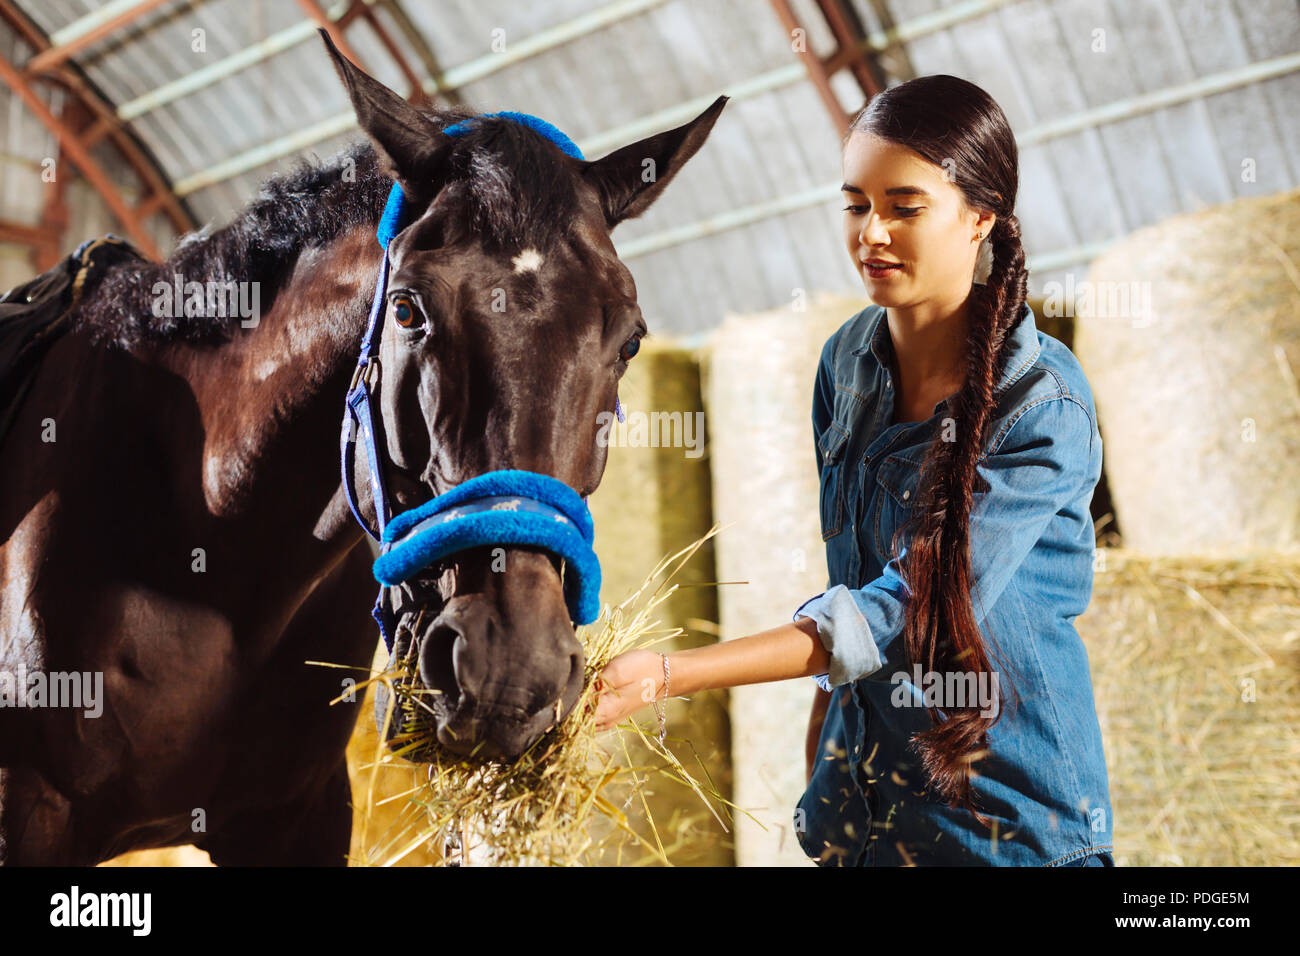 Beautiful dark racing horse eating some straw standing in stable - Stock Image